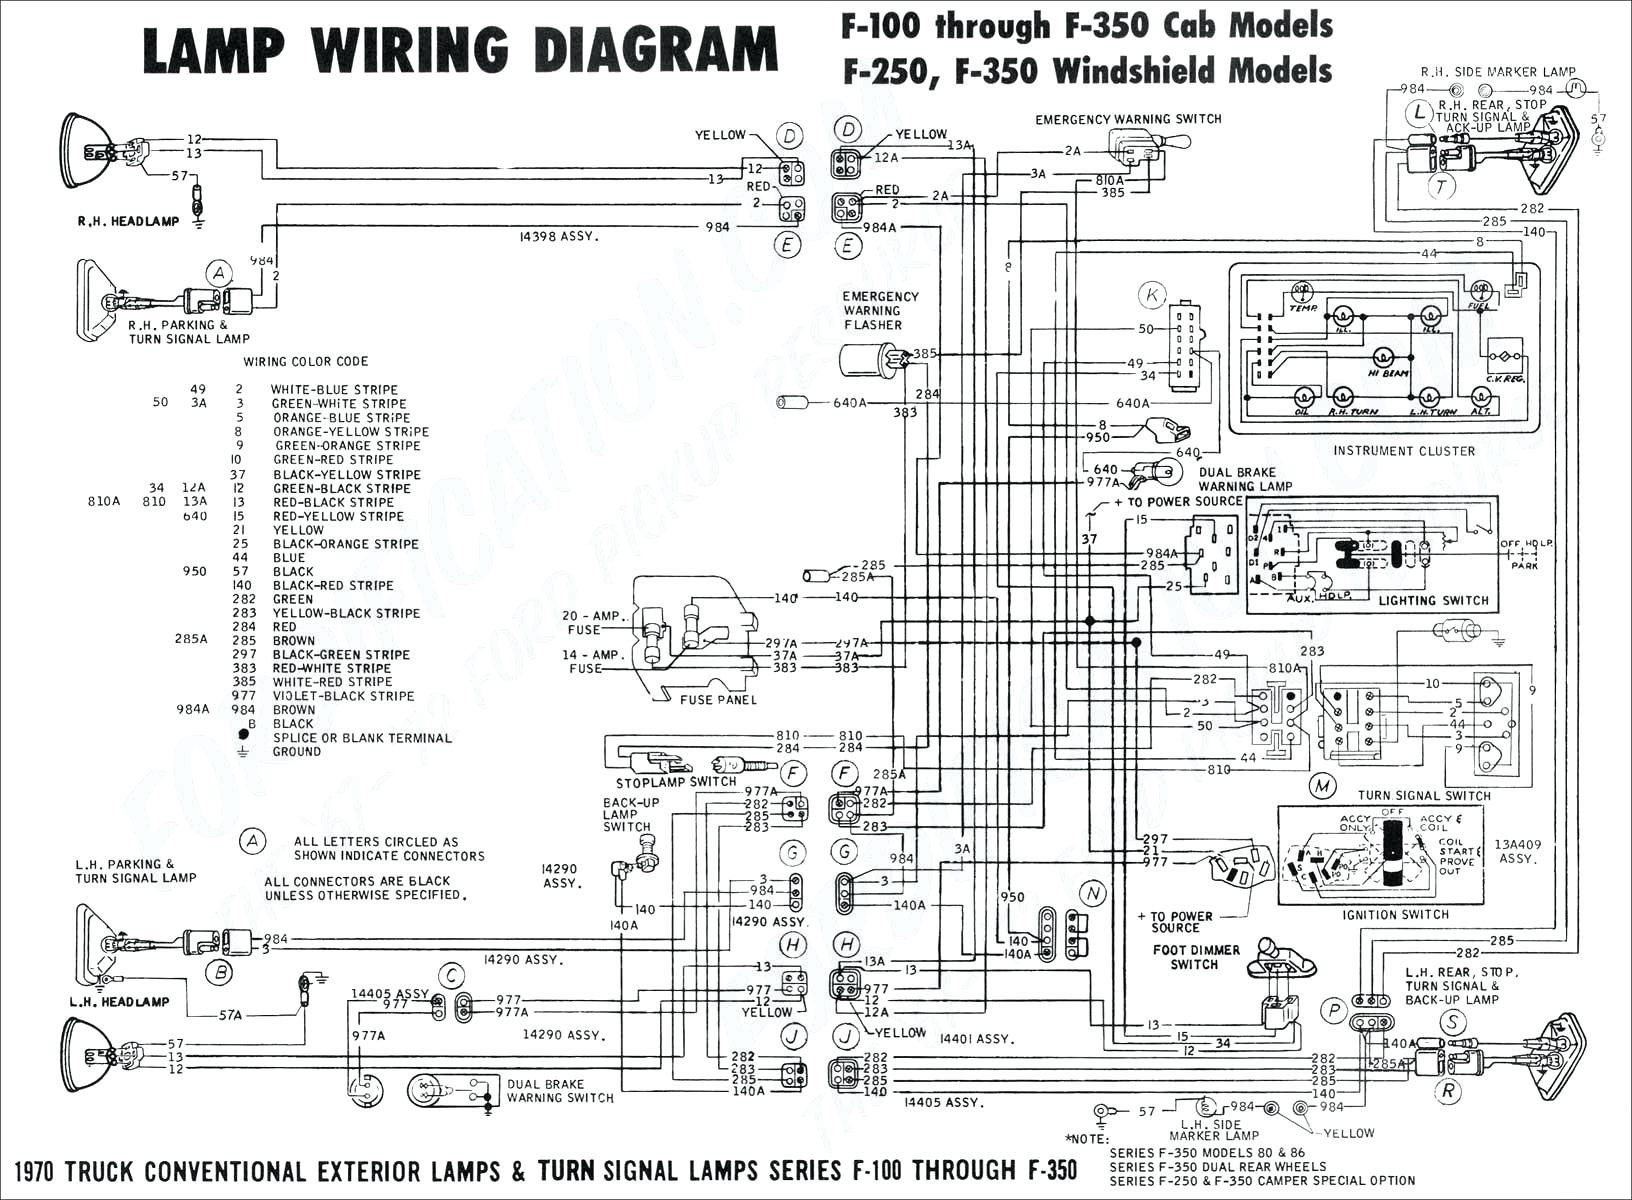 2014 Ford F 150 Wiring Diagram Free Mazda Mpv V6 Firing Order For Wiring Diagram Schematics